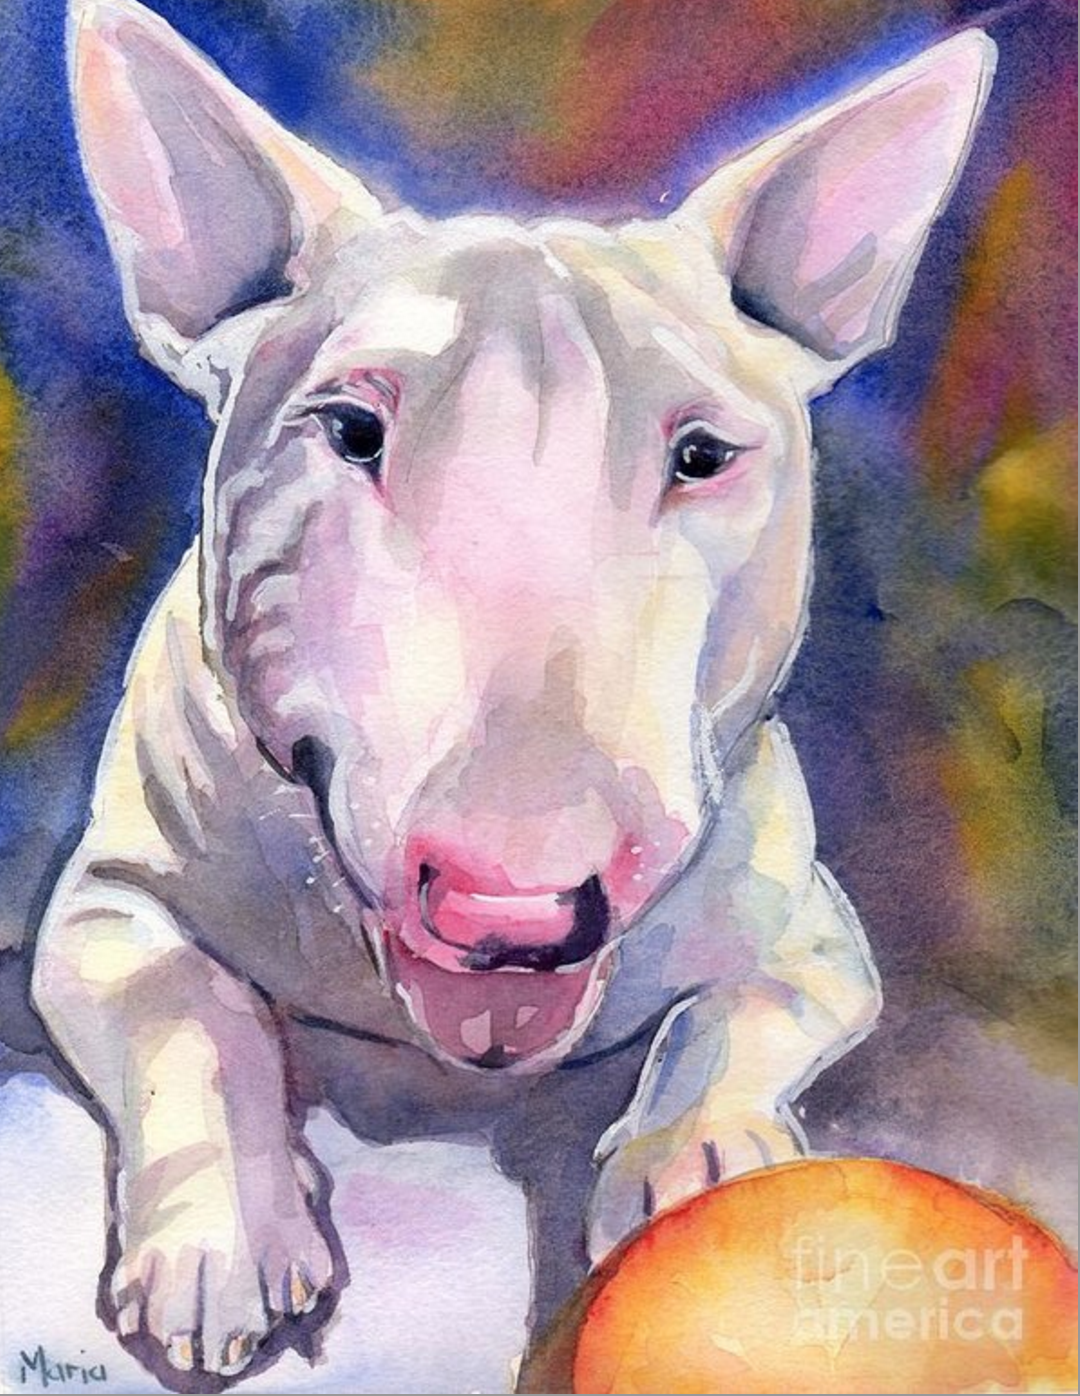 Miniature Bull Terrier, purebred dogs, Hildie, dogs